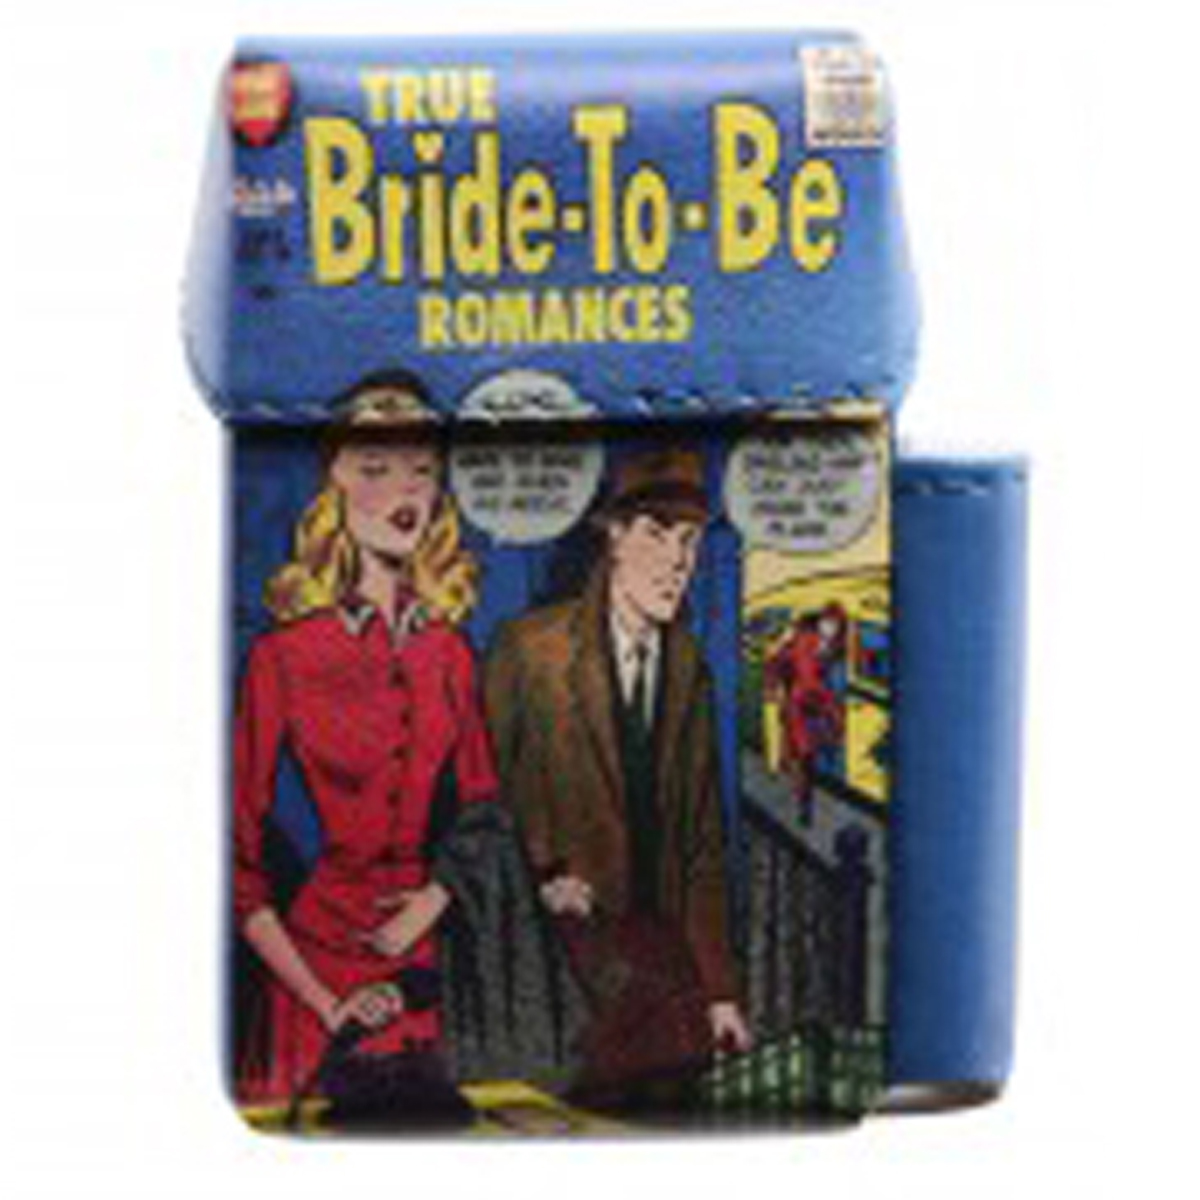 Etui paquet de cigarettes \'Bandes Dessinées\' vintage (True bride to be romances) - 93x55x25 mm - [Q3062]